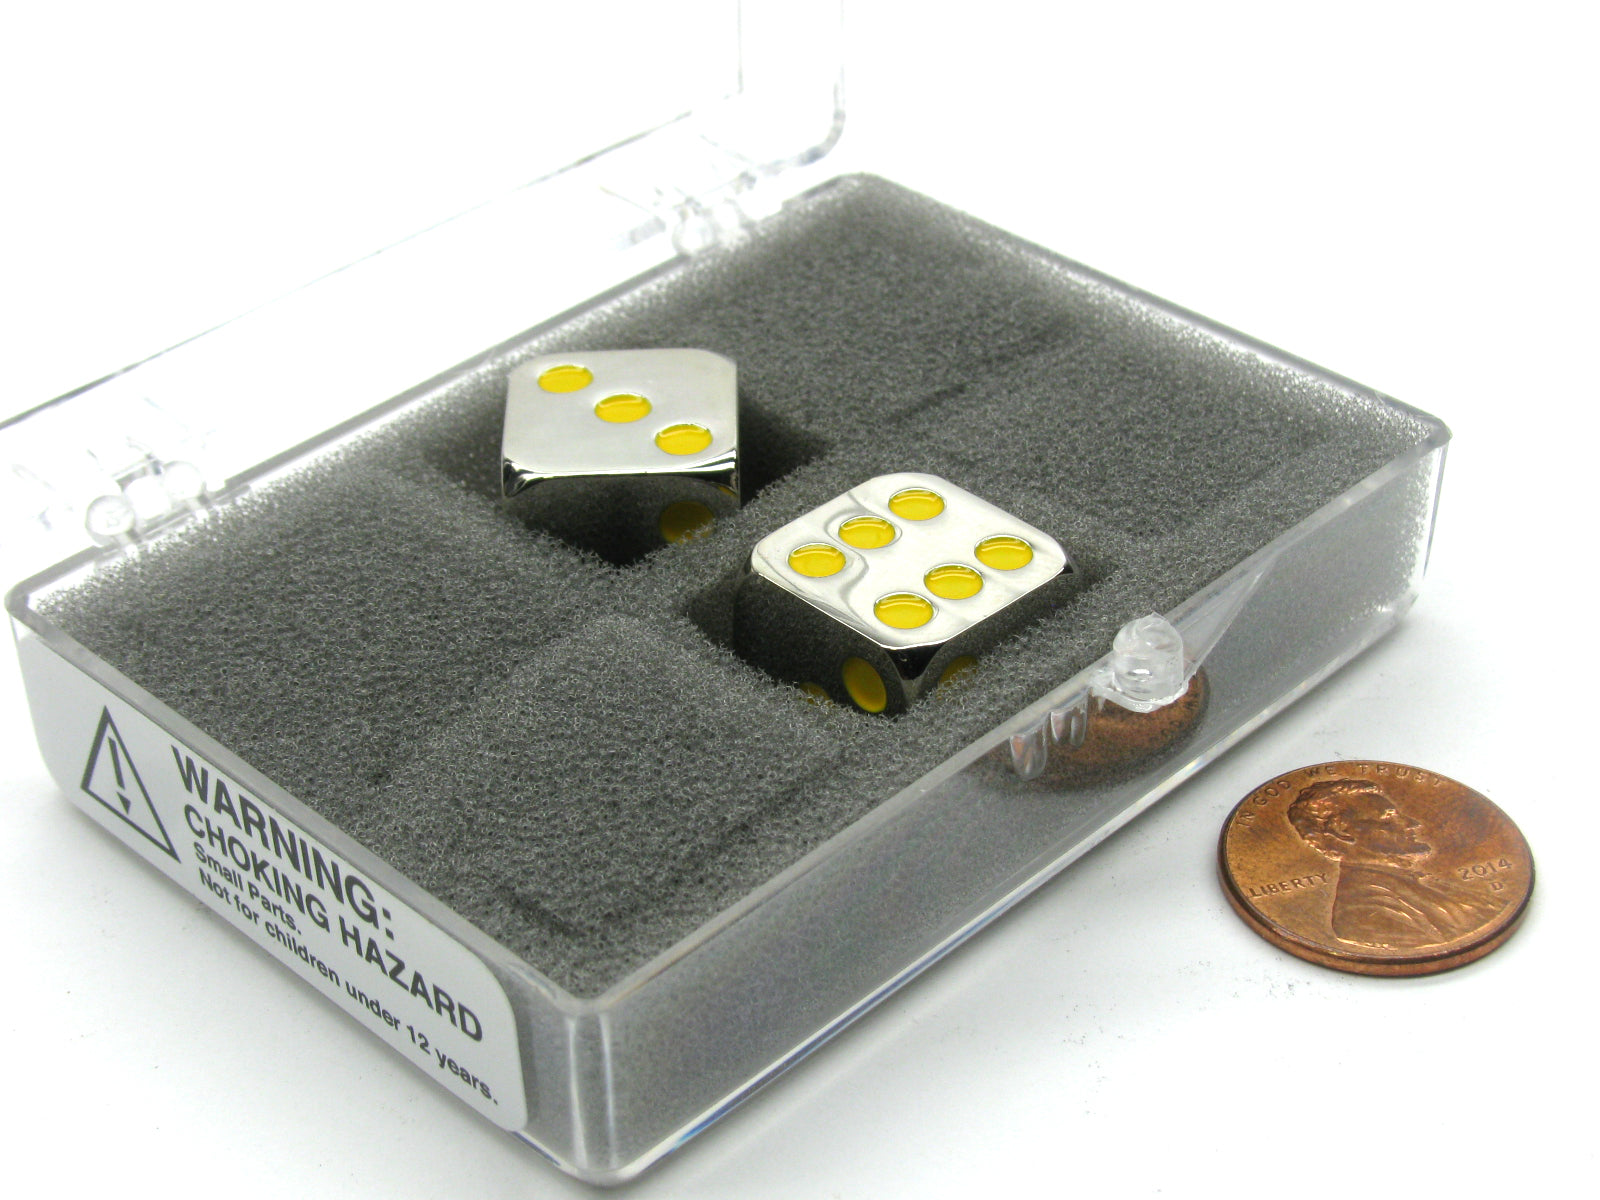 Box of 2 Zinc Metal Alloy D6 15mm Heavy Dice - Yellow Pips